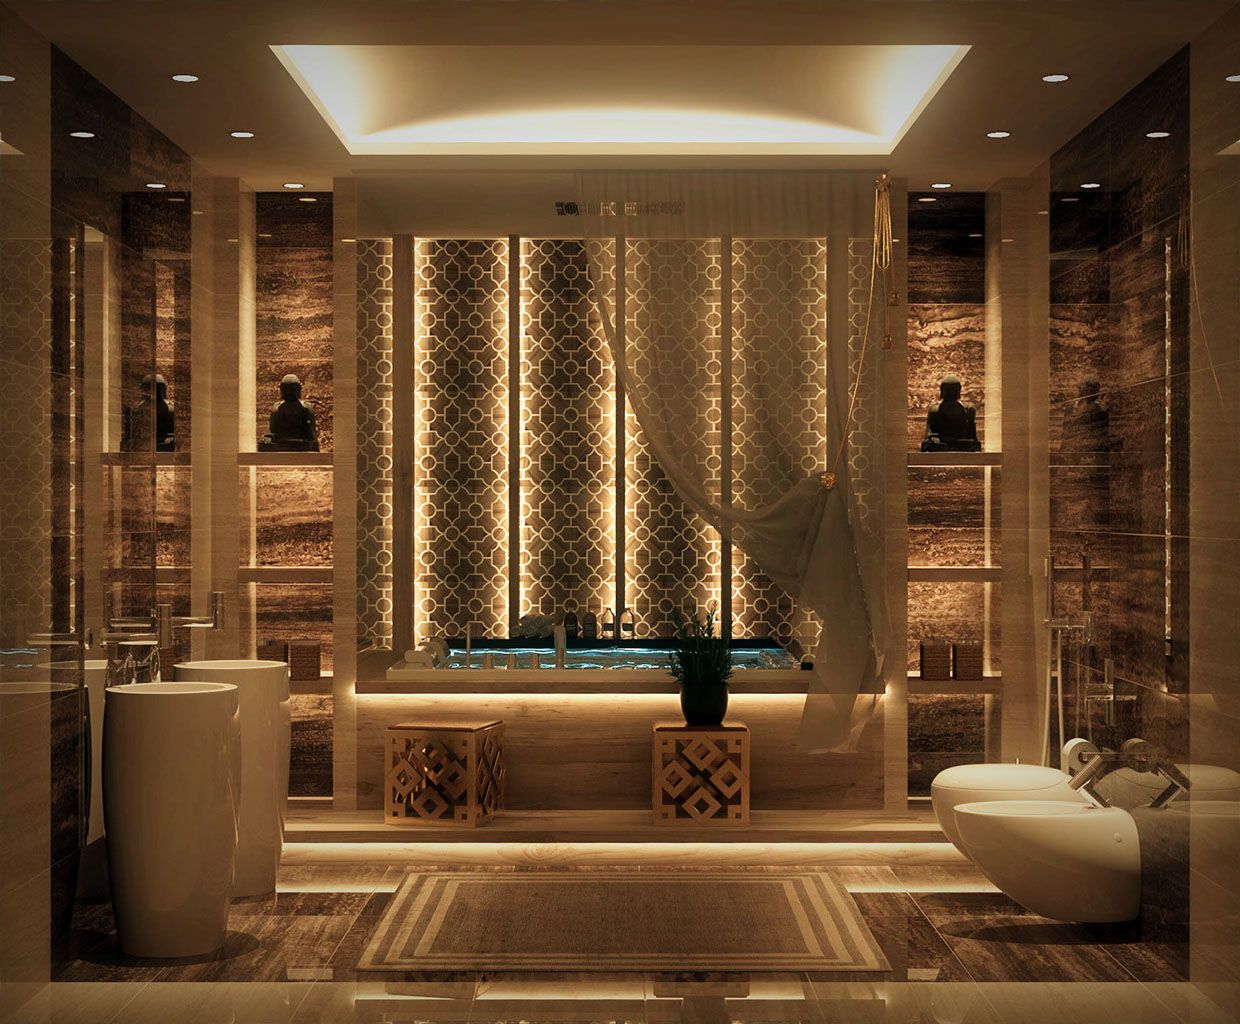 Luxury Bathrooms Plans luxurious bathrooms with stunning design details